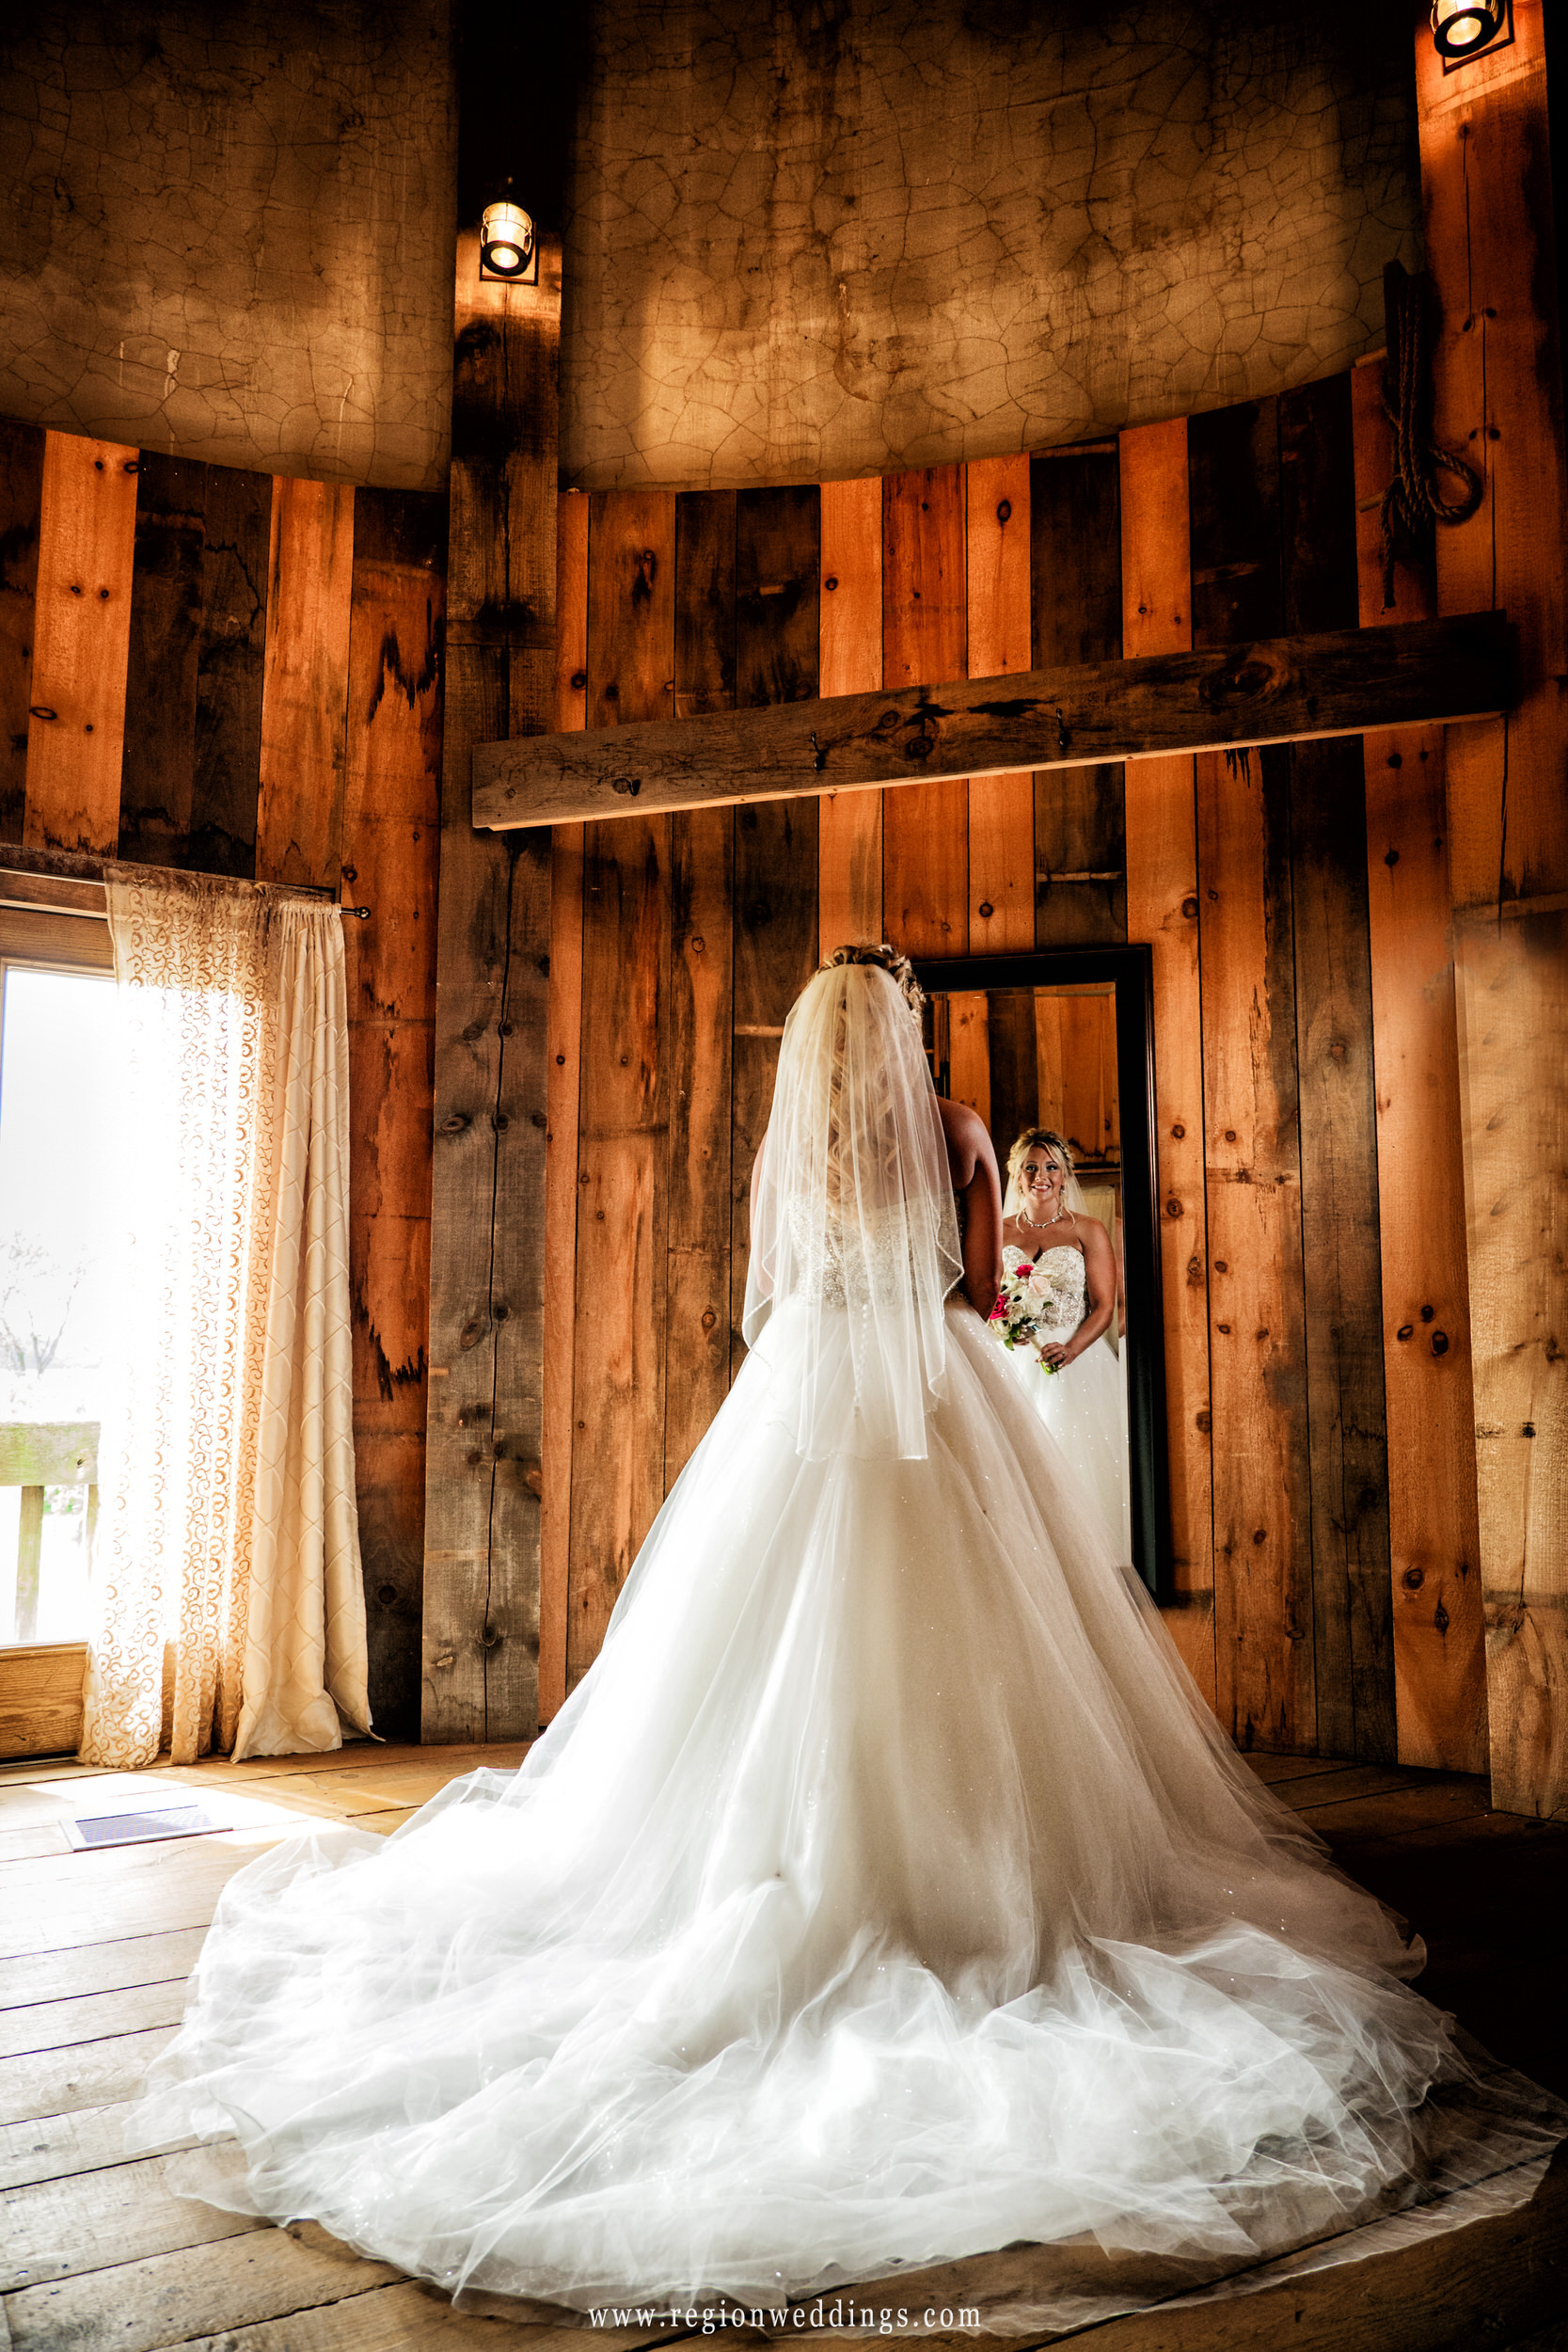 Bride in her flowing wedding dress inside the bridal suite at County Line Orchard.